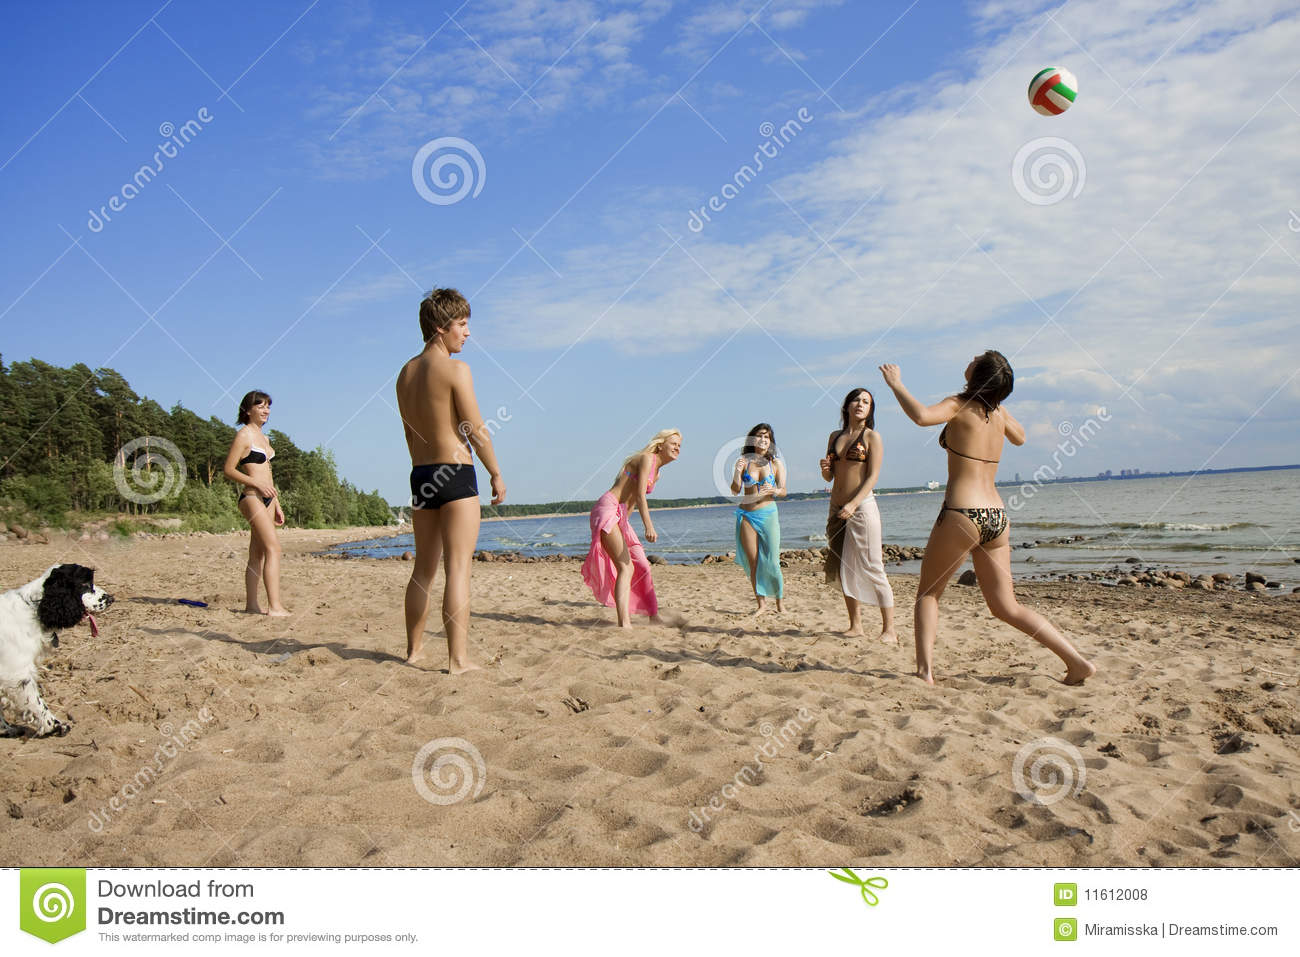 People on the beach playing volleyball